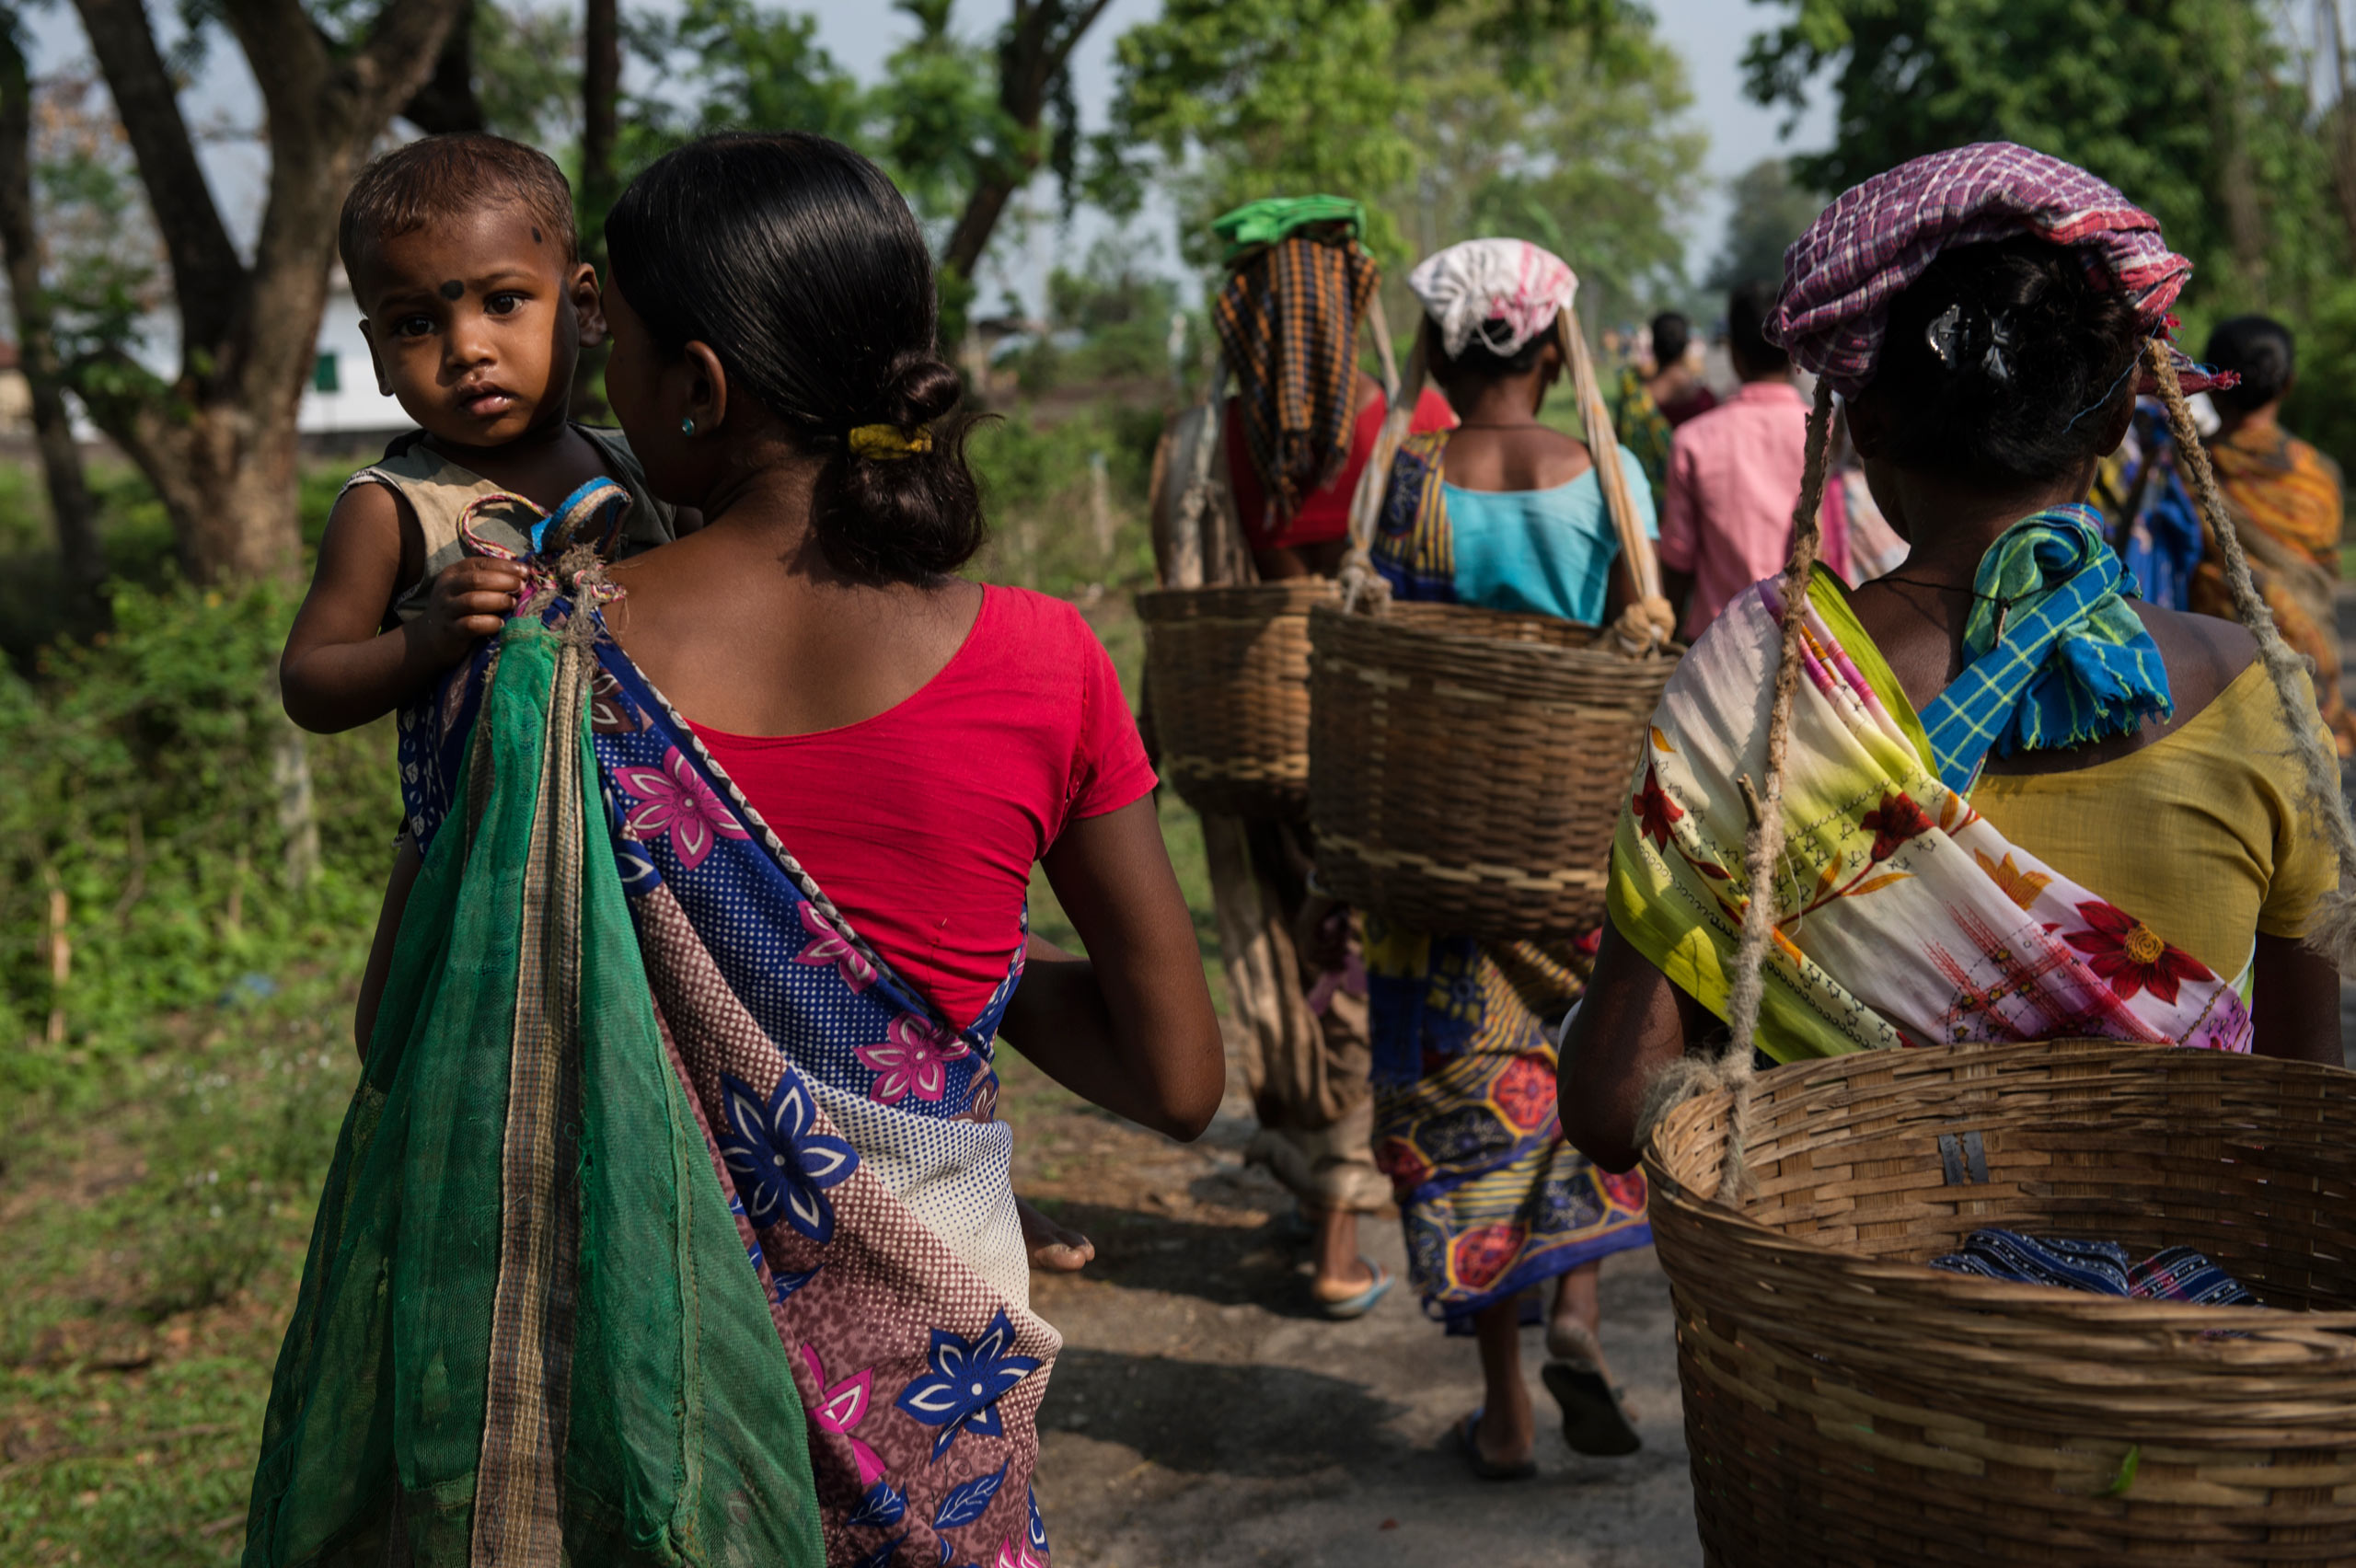 Indian women walk to work with their children to pick tealeaves on a tea plantation in the Panbari Tea Estate in Assam. India, April 9, 2015.